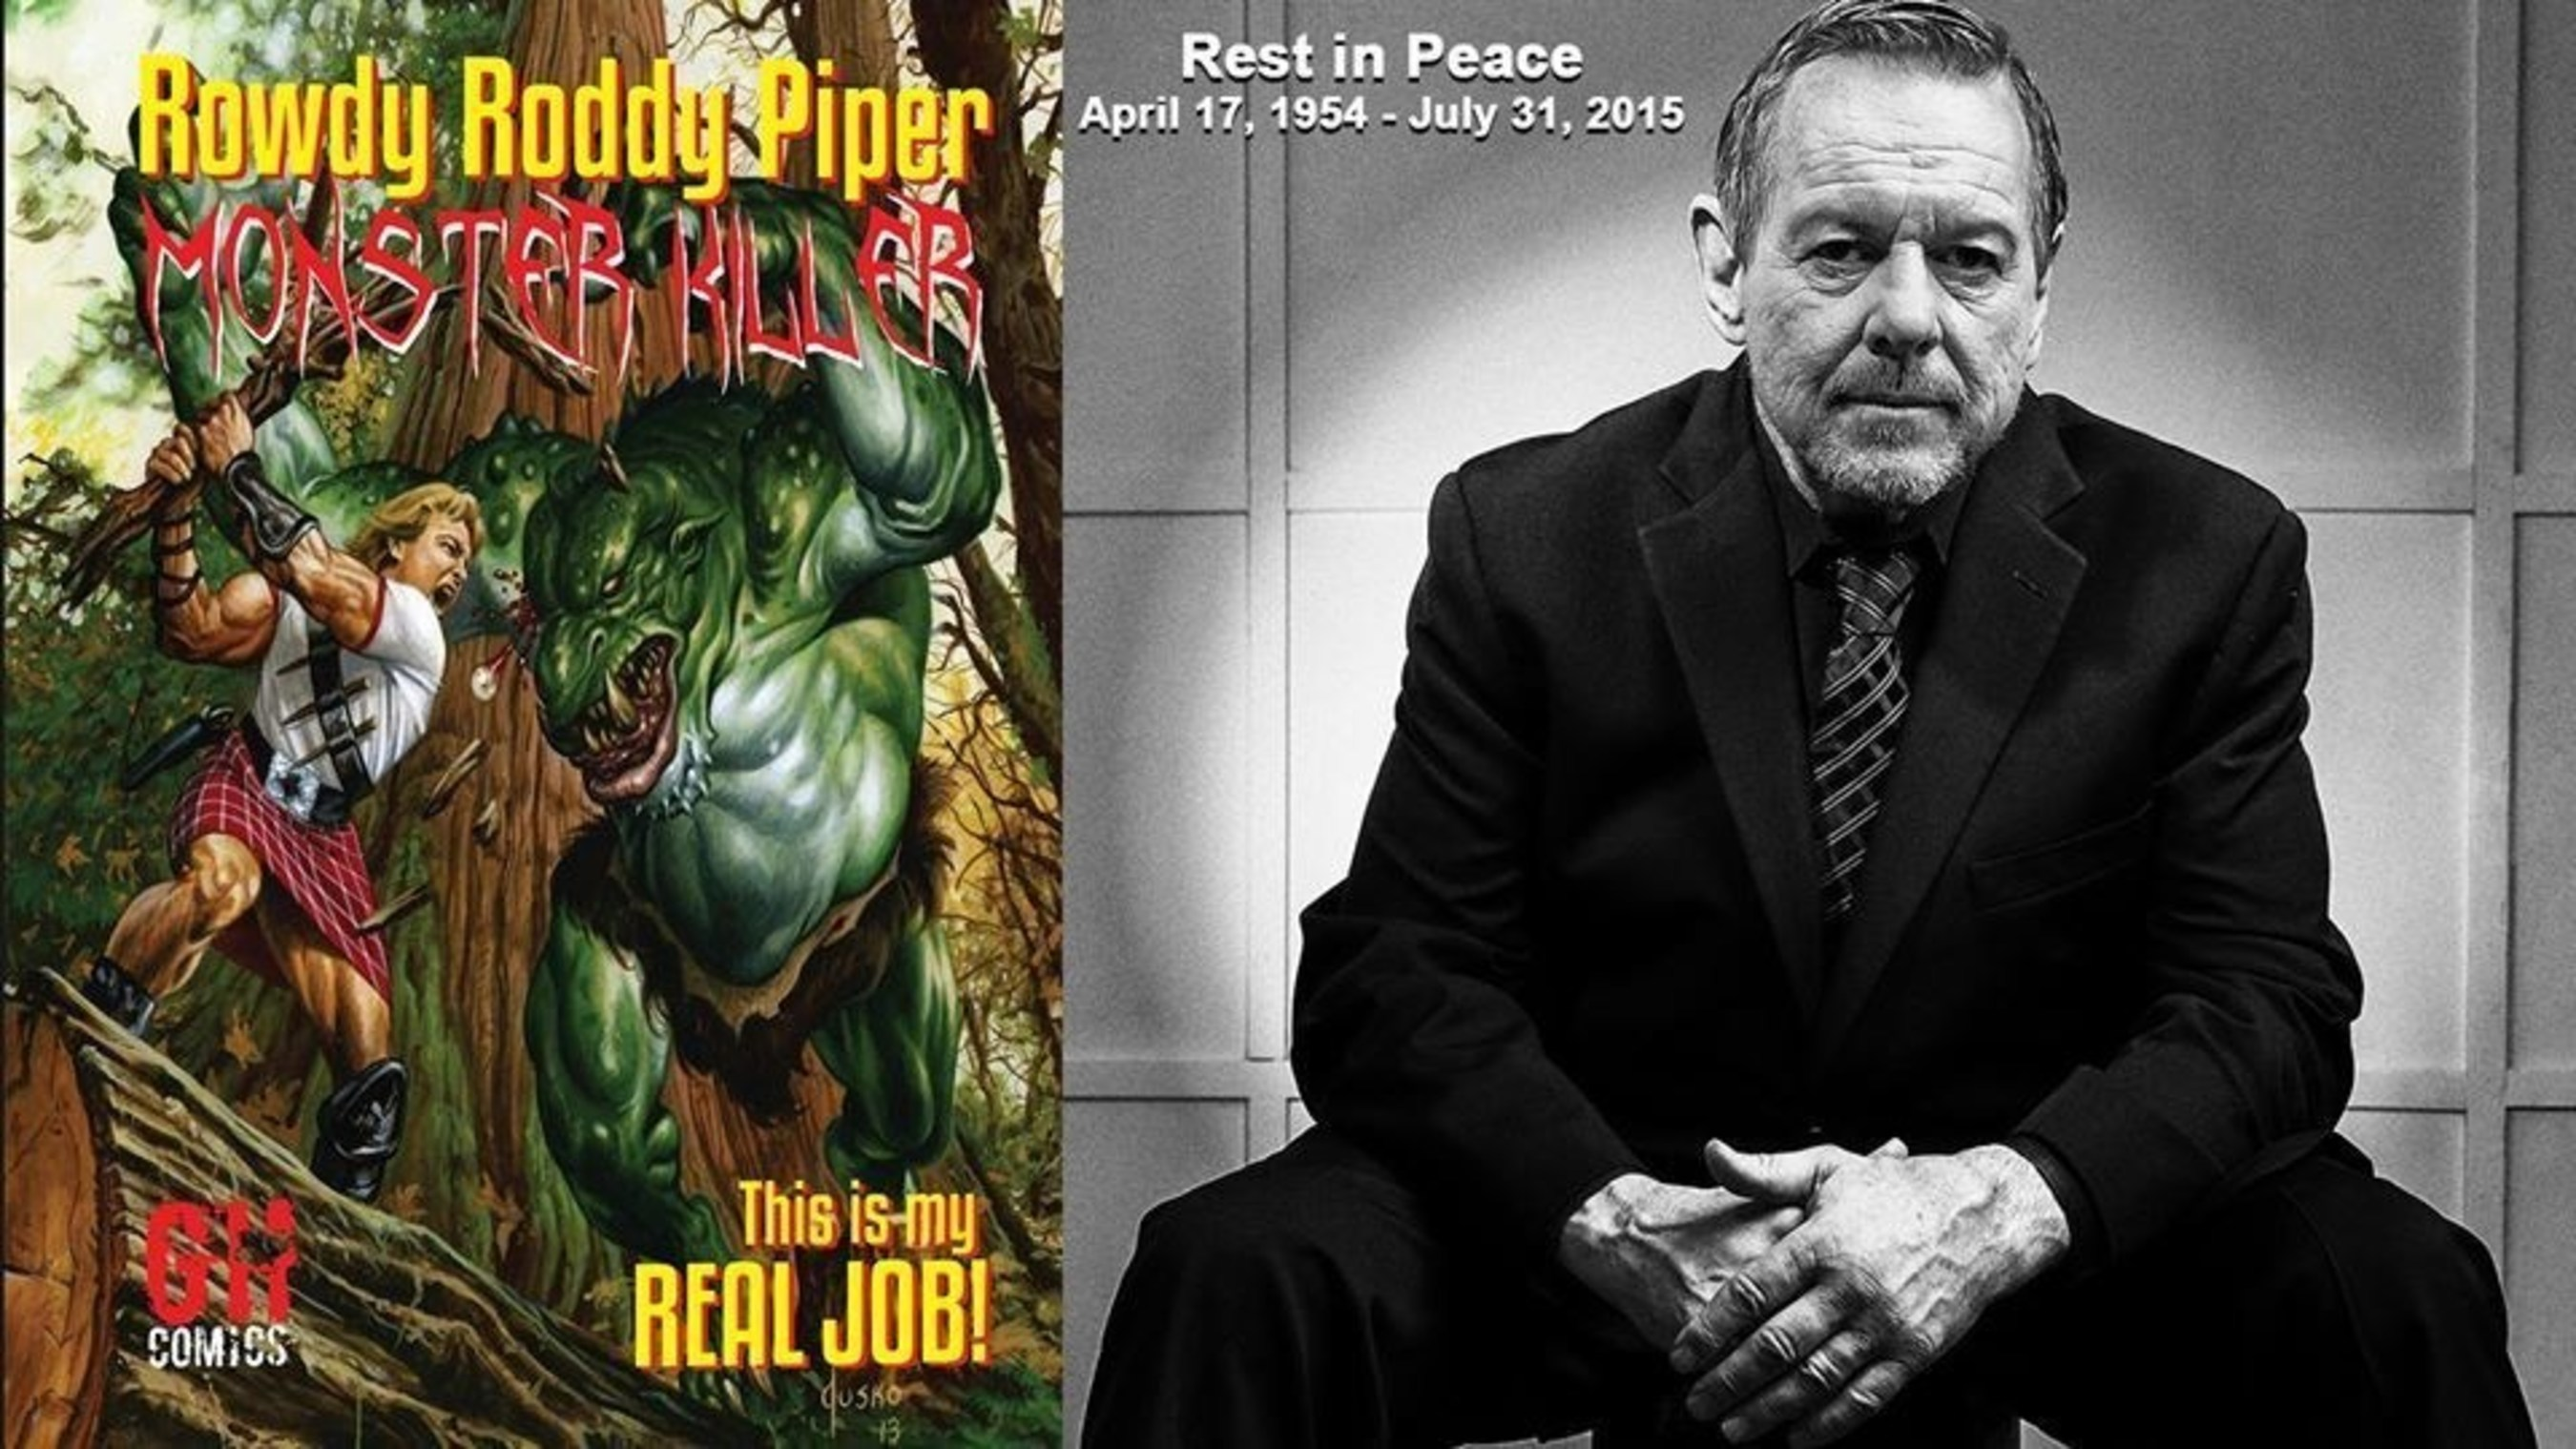 WWE Legend Rowdy Roddy Piper Monster Killer Graphic Novel - Now Available